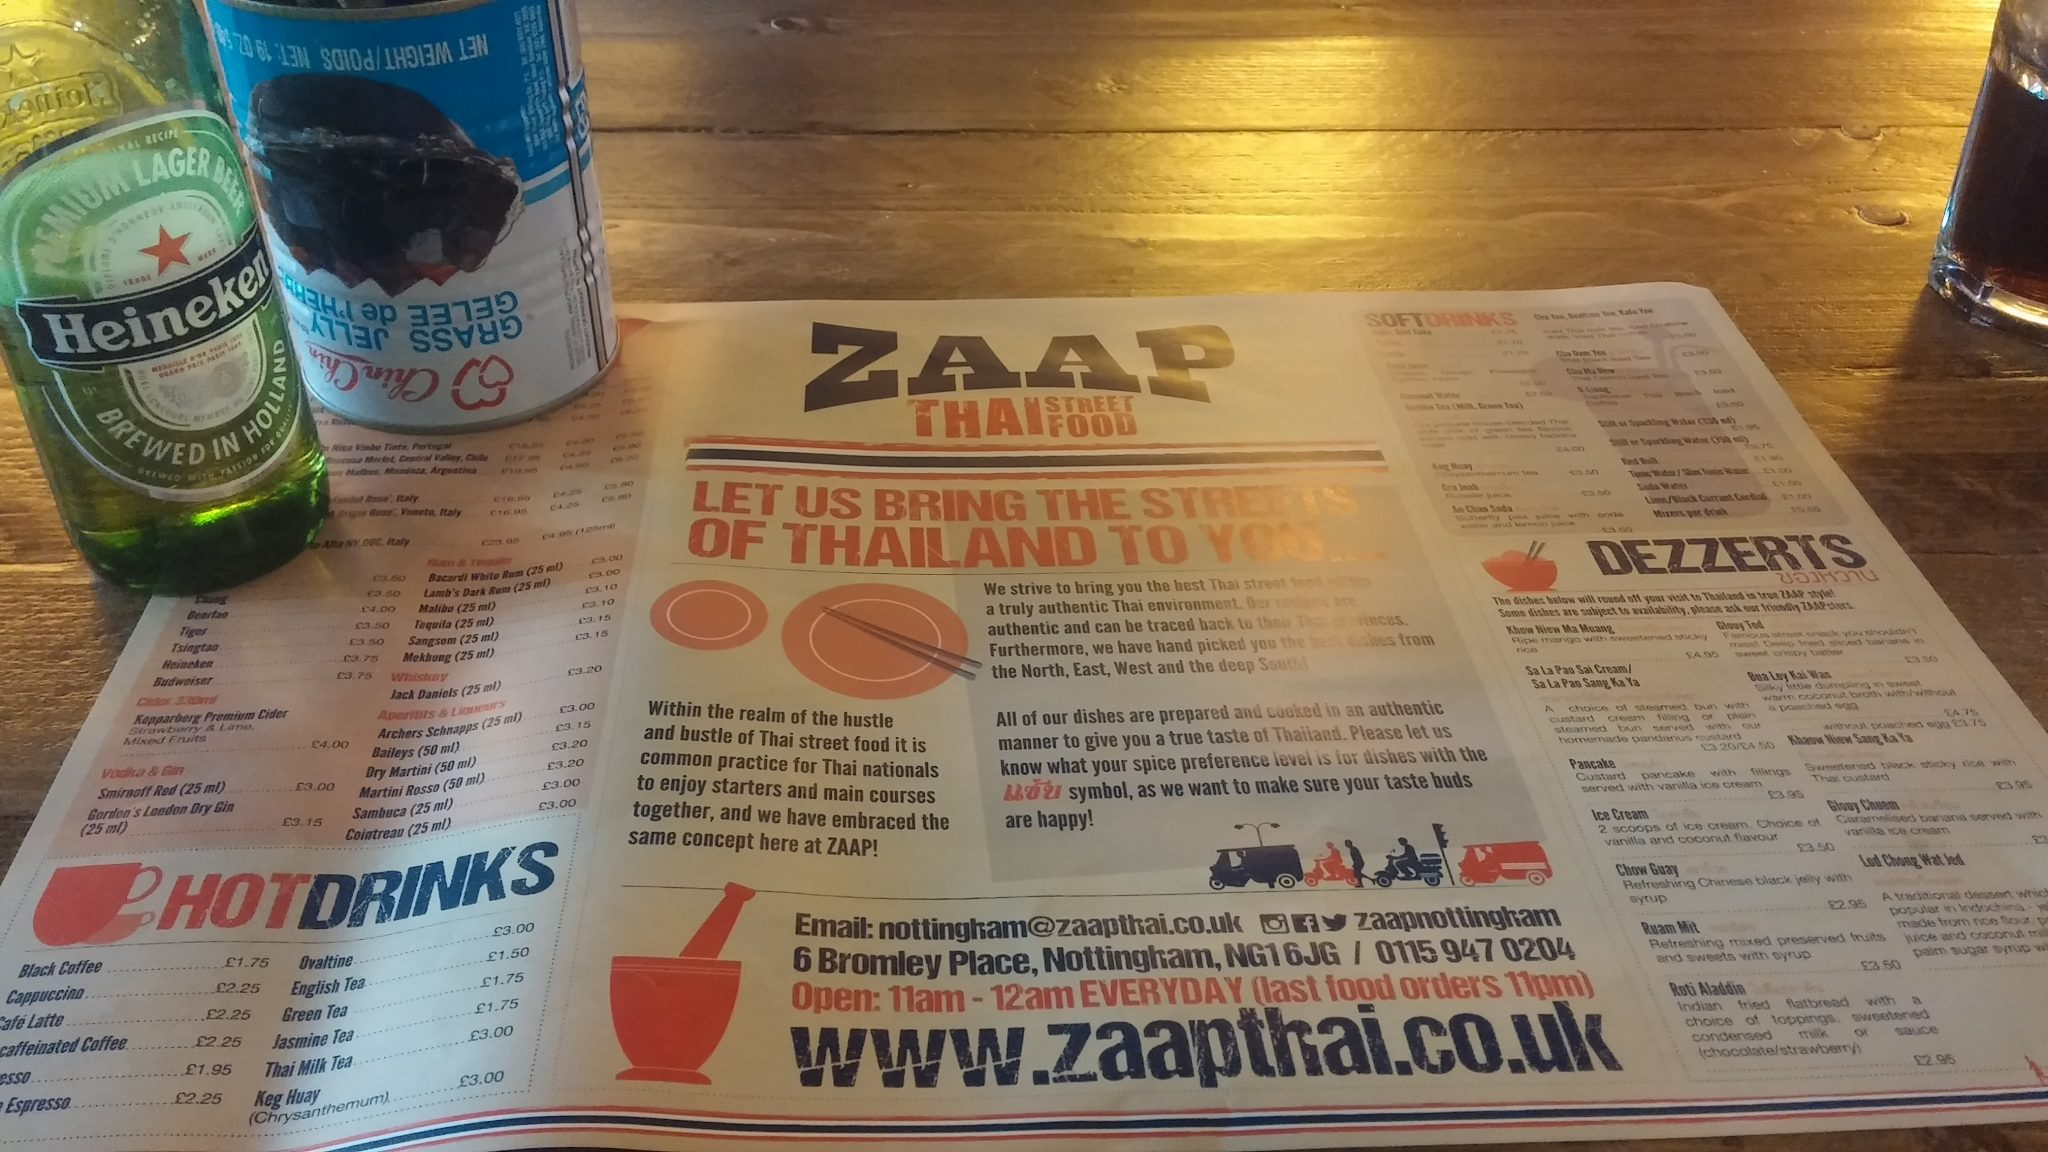 Restaurant Review: Zaap Thai, Bromley Place, Nottingham